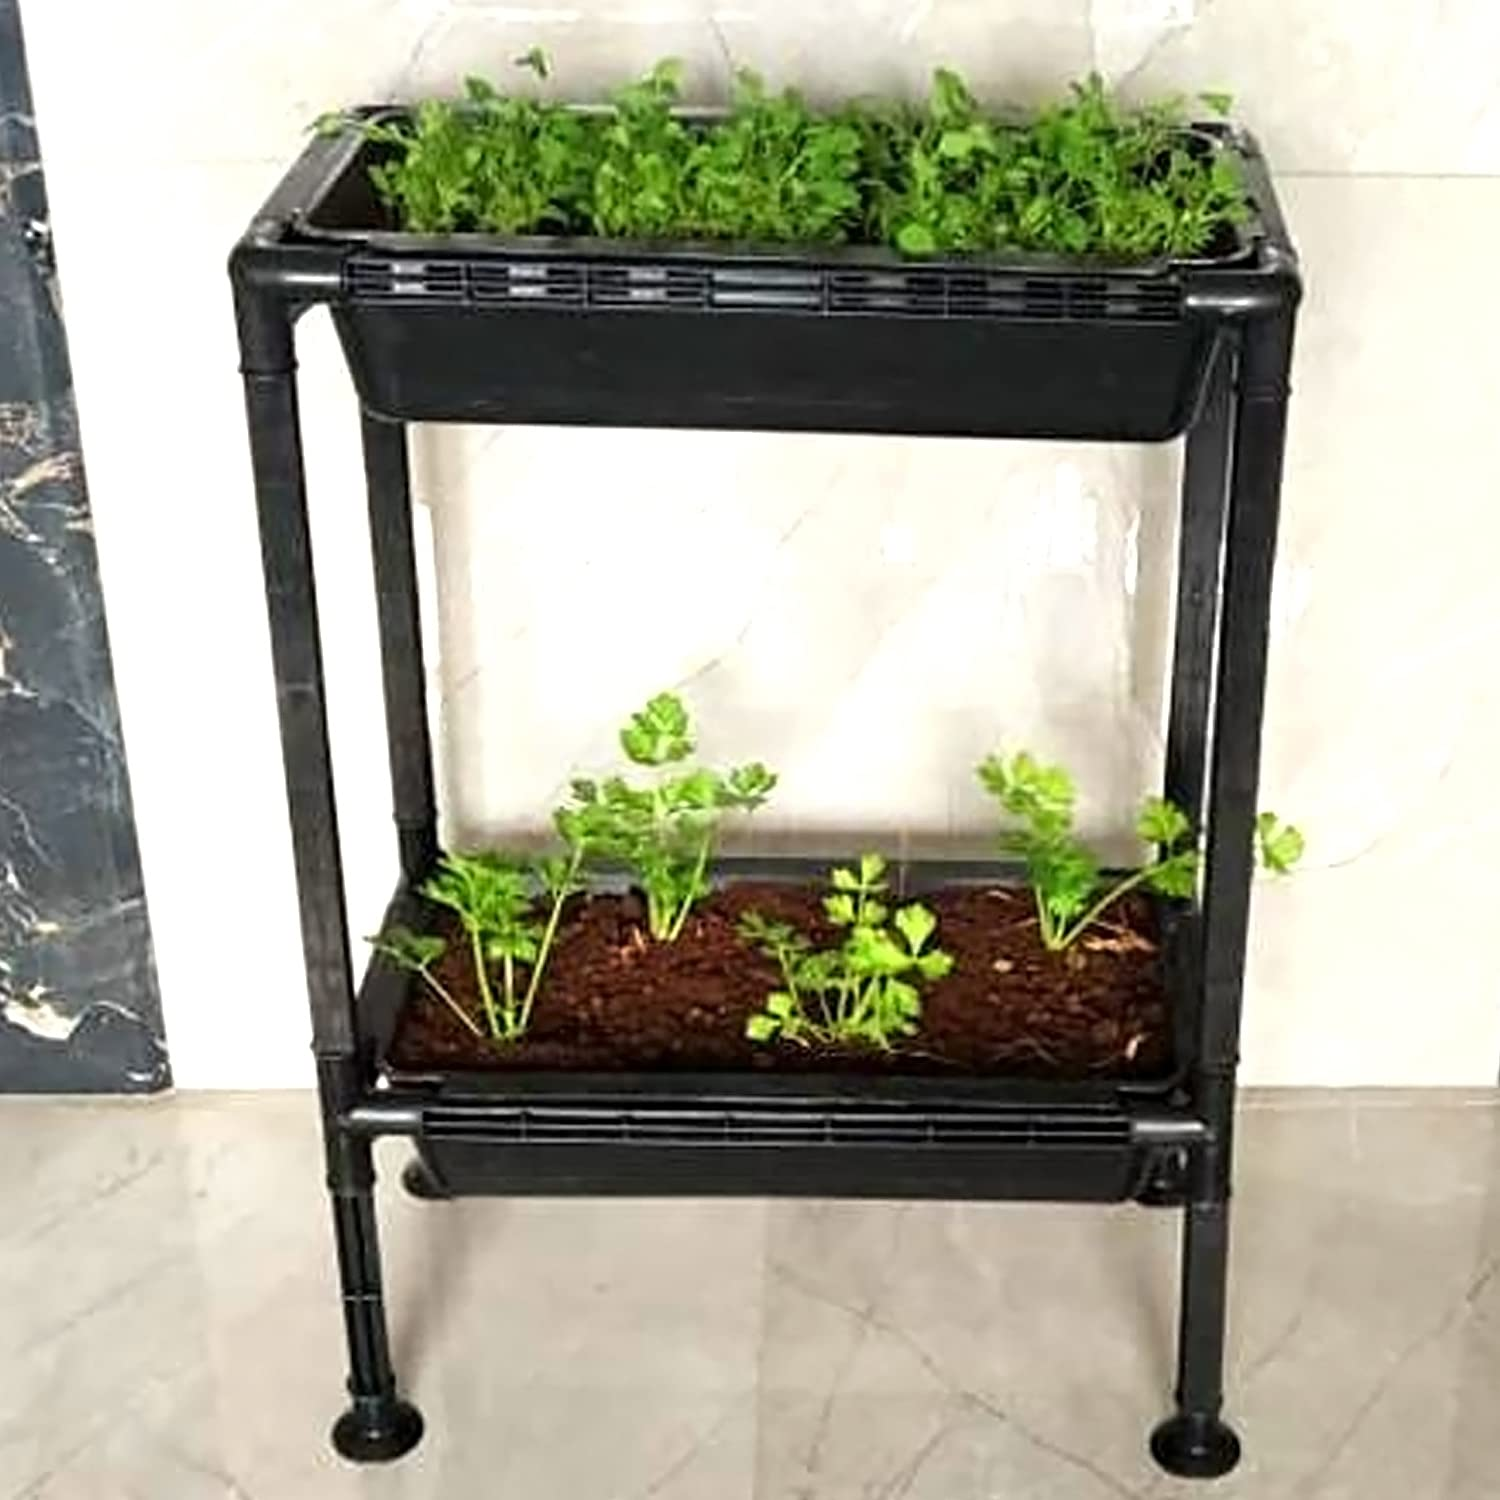 Kraft Seeds Growing Rack Stack Up Planter – Double Tray Kit for Home Garden Use